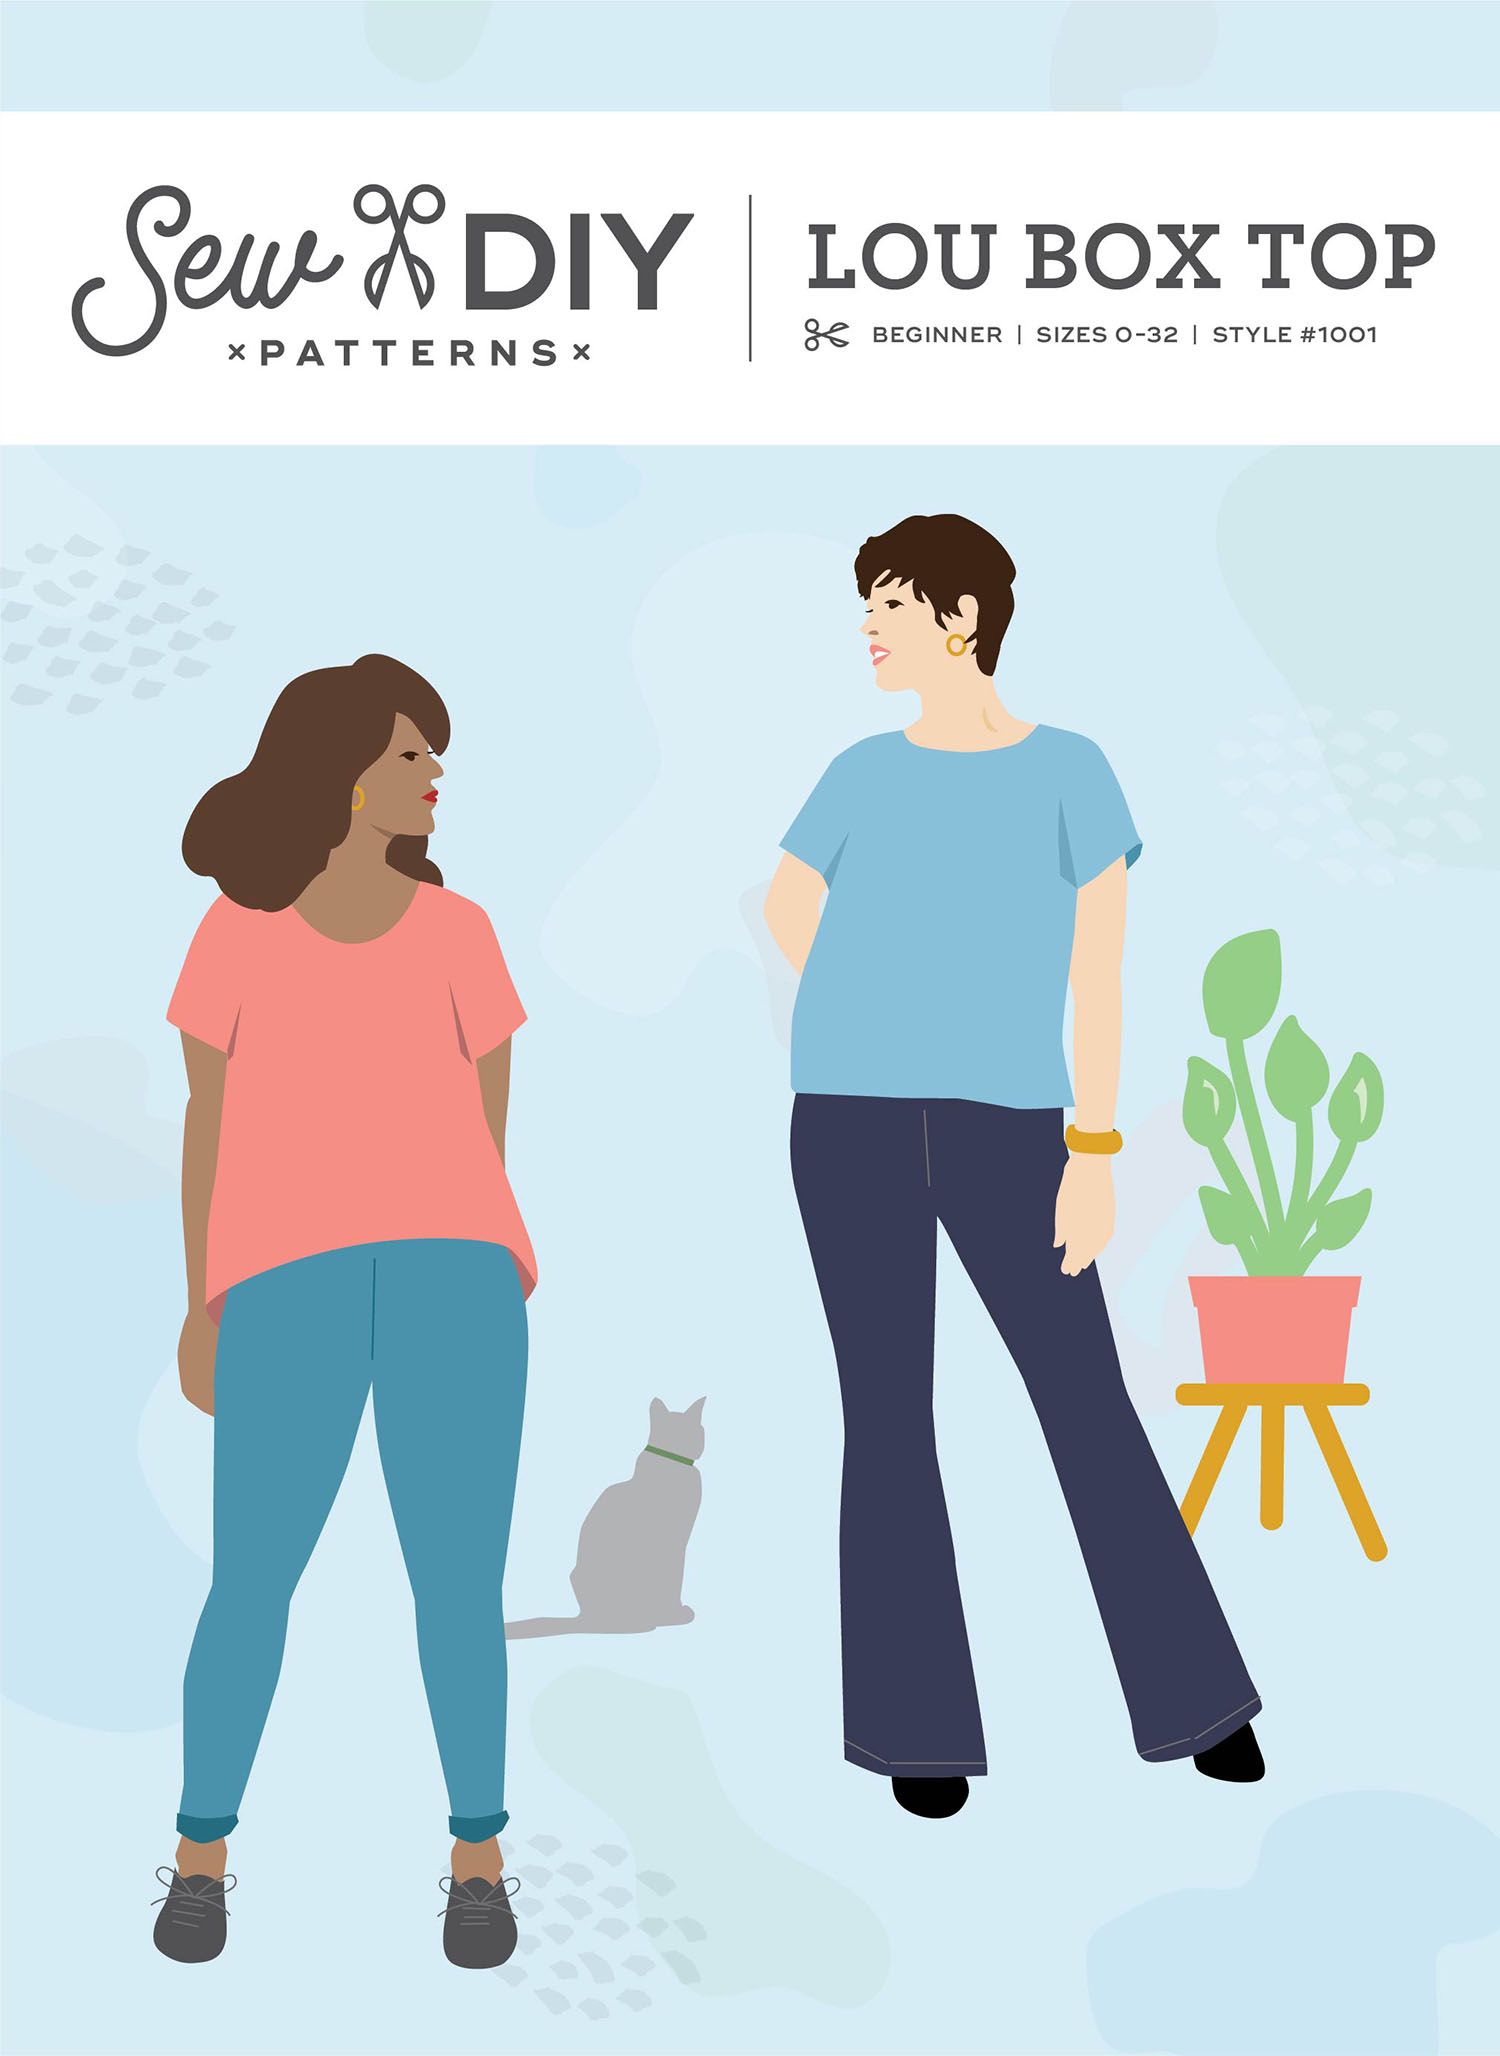 Announcing! The re-launch of the Lou Box Top pdf sewing pattern from Sew DIY